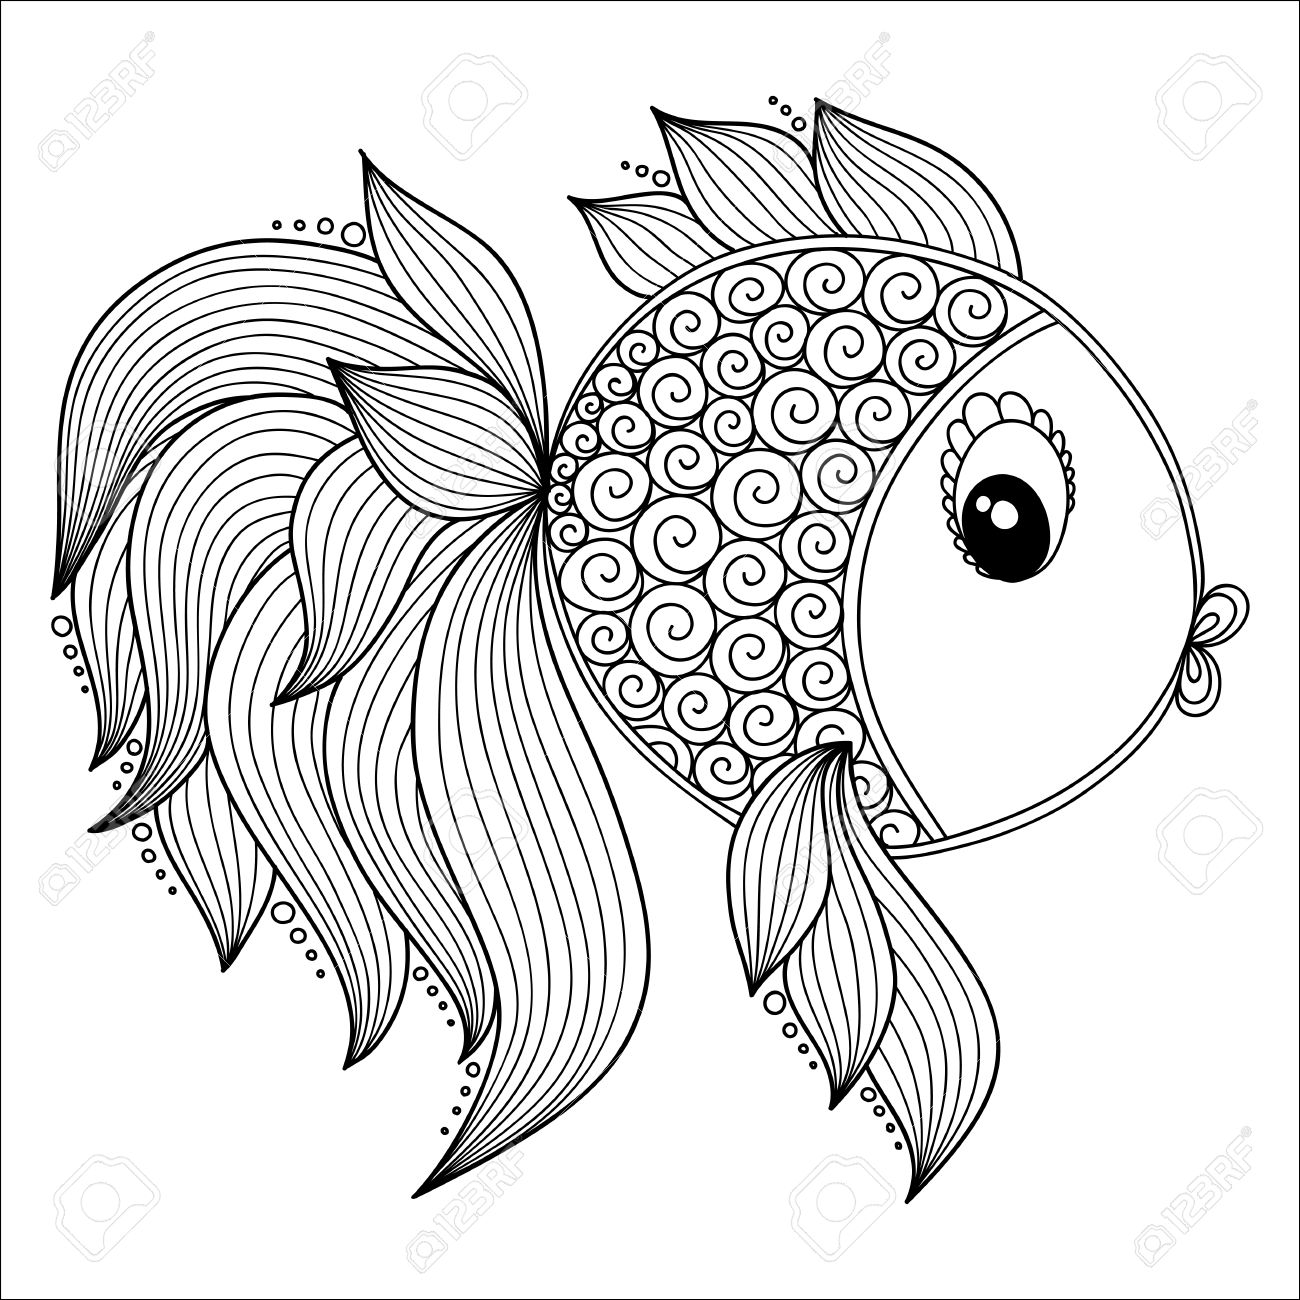 Pattern for coloring book. Coloring book pages for kids and adults.Vector Cute Cartoon Fish. Henna Mehndi Tattoo Style Doodles - 47644665